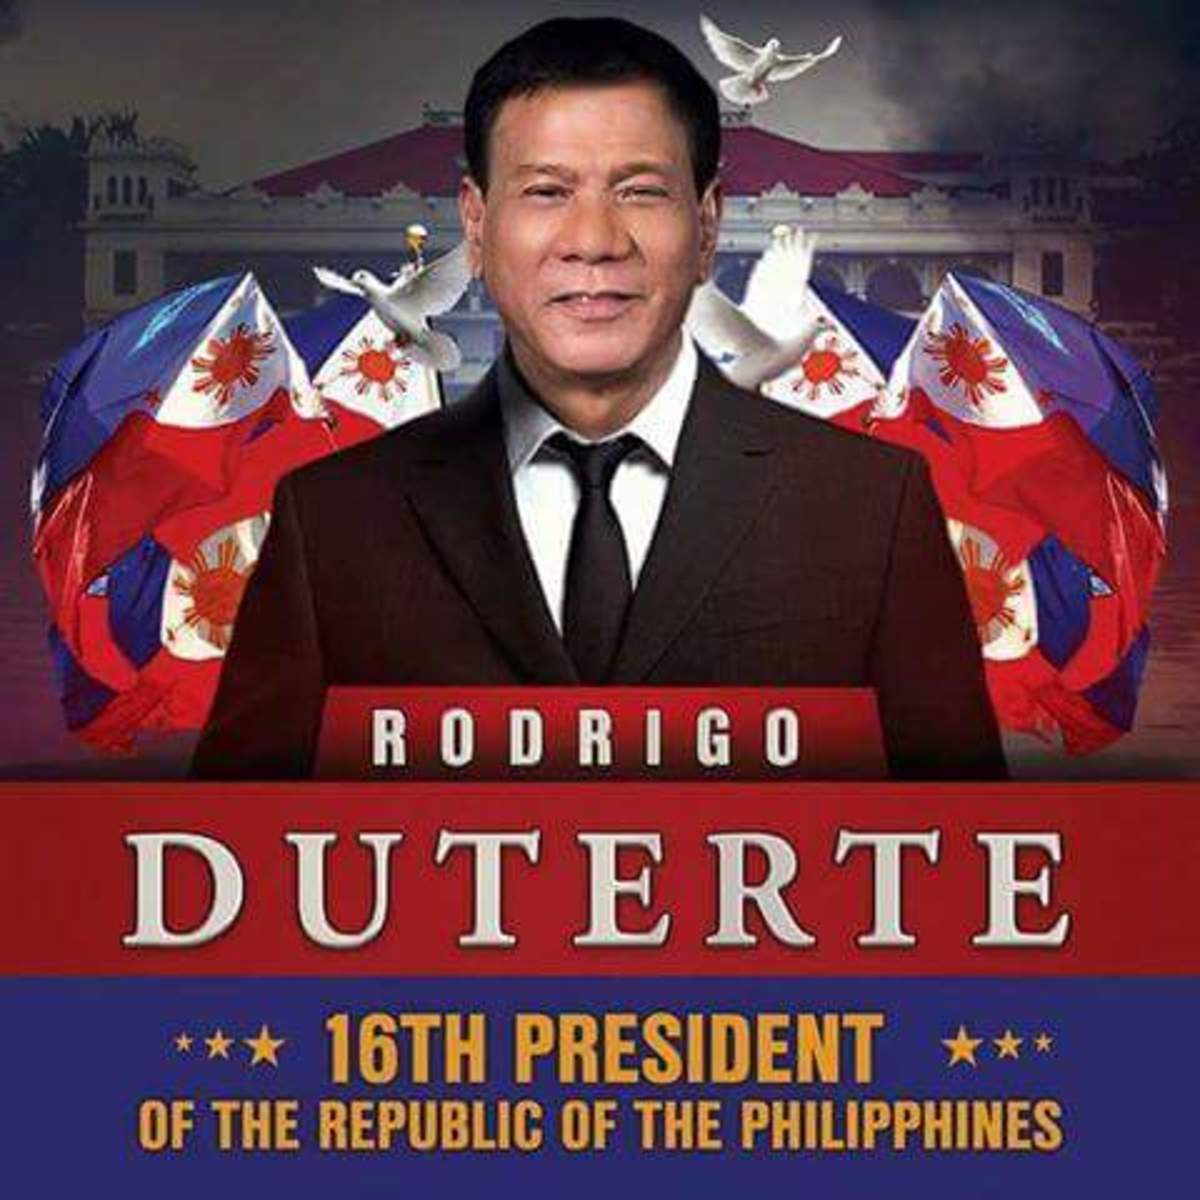 The Duterte Presidency